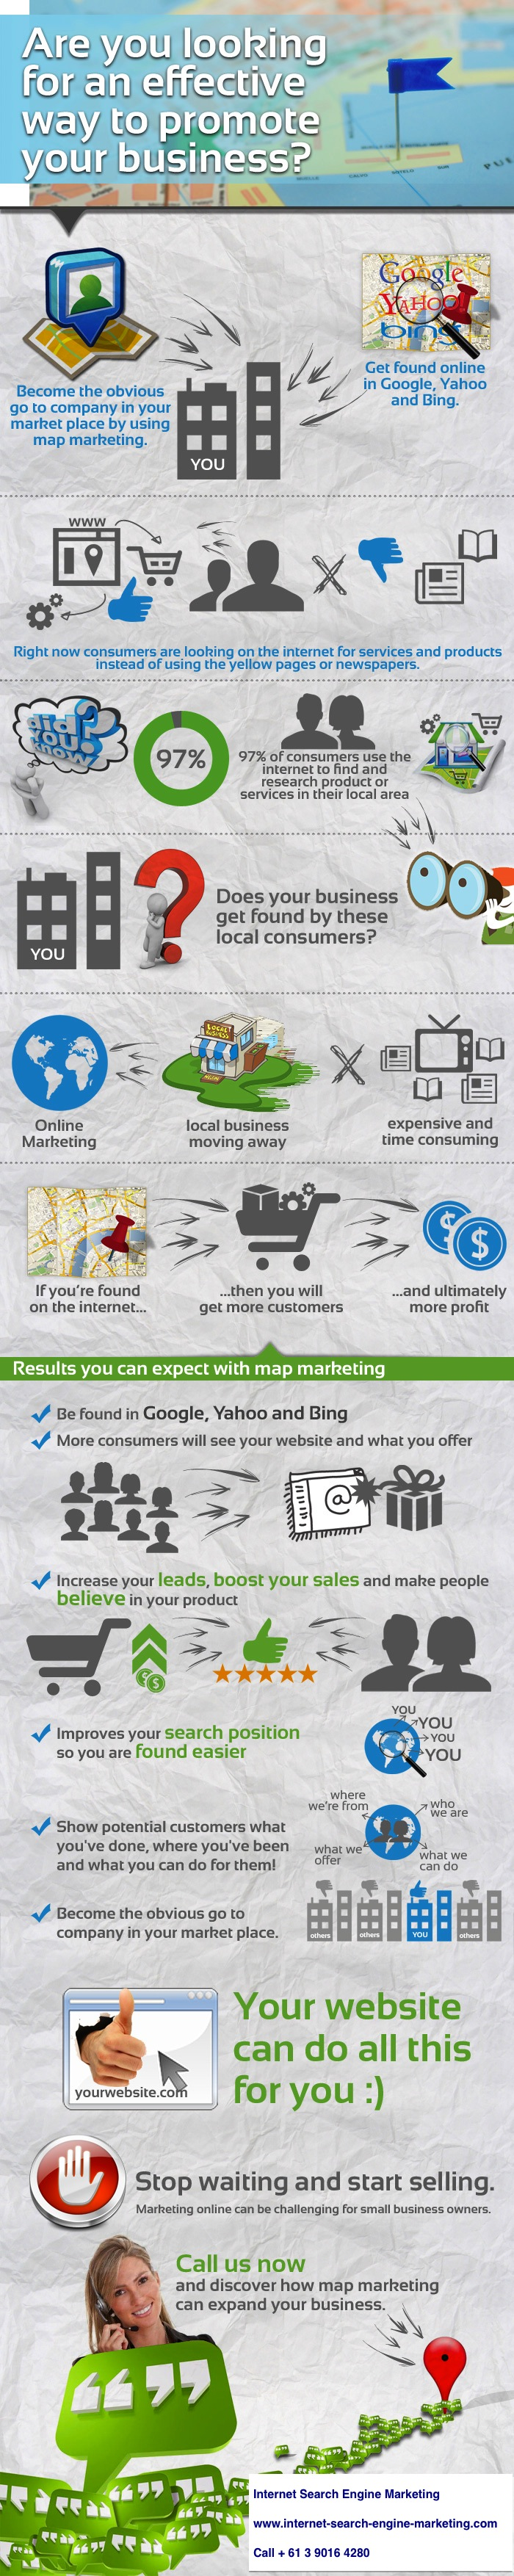 Google Internet Search Engine Marketing